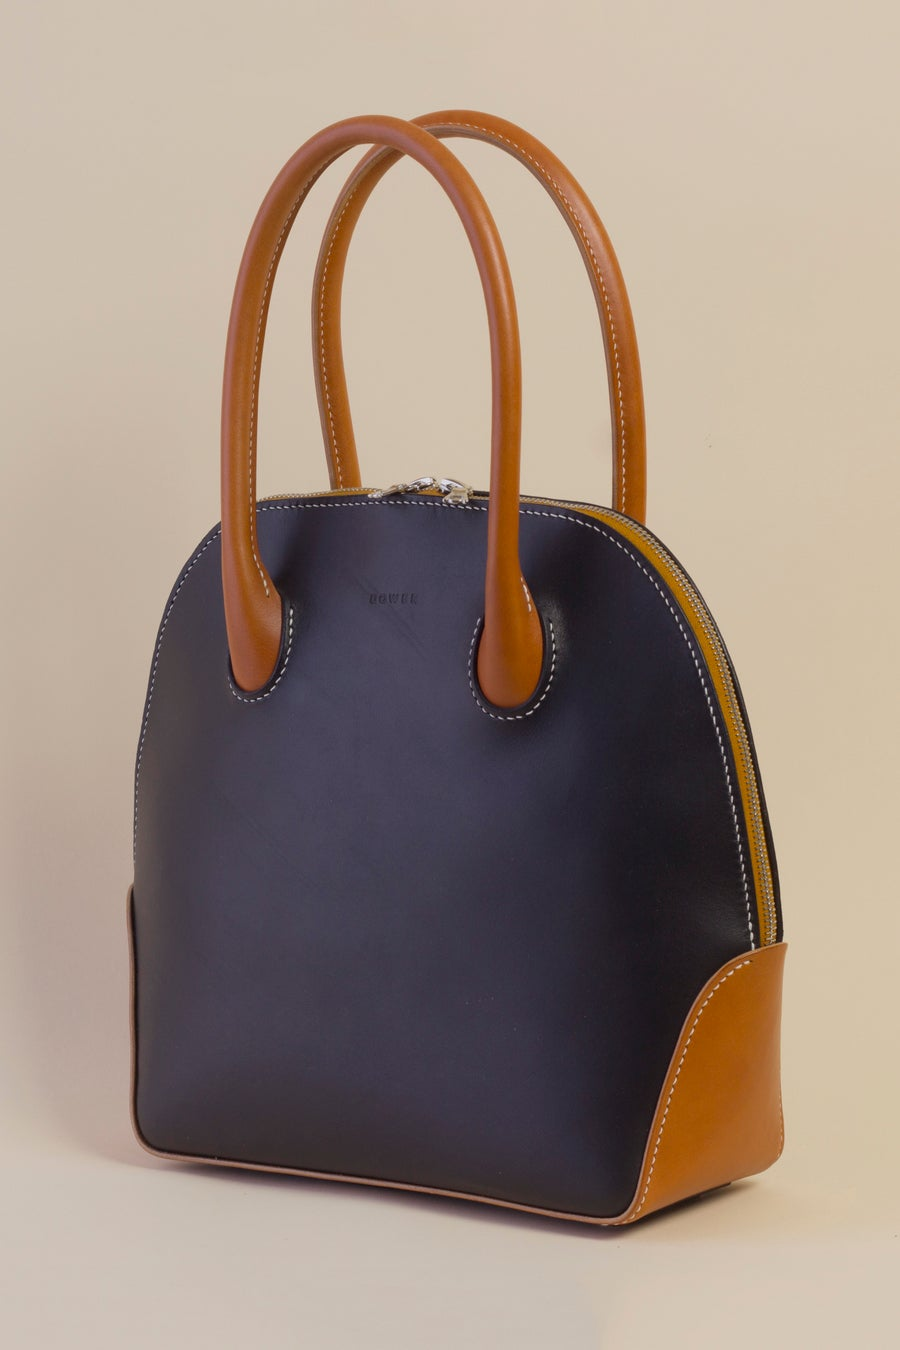 Image of Alie Handbag <br> Black and Tan English Bridle